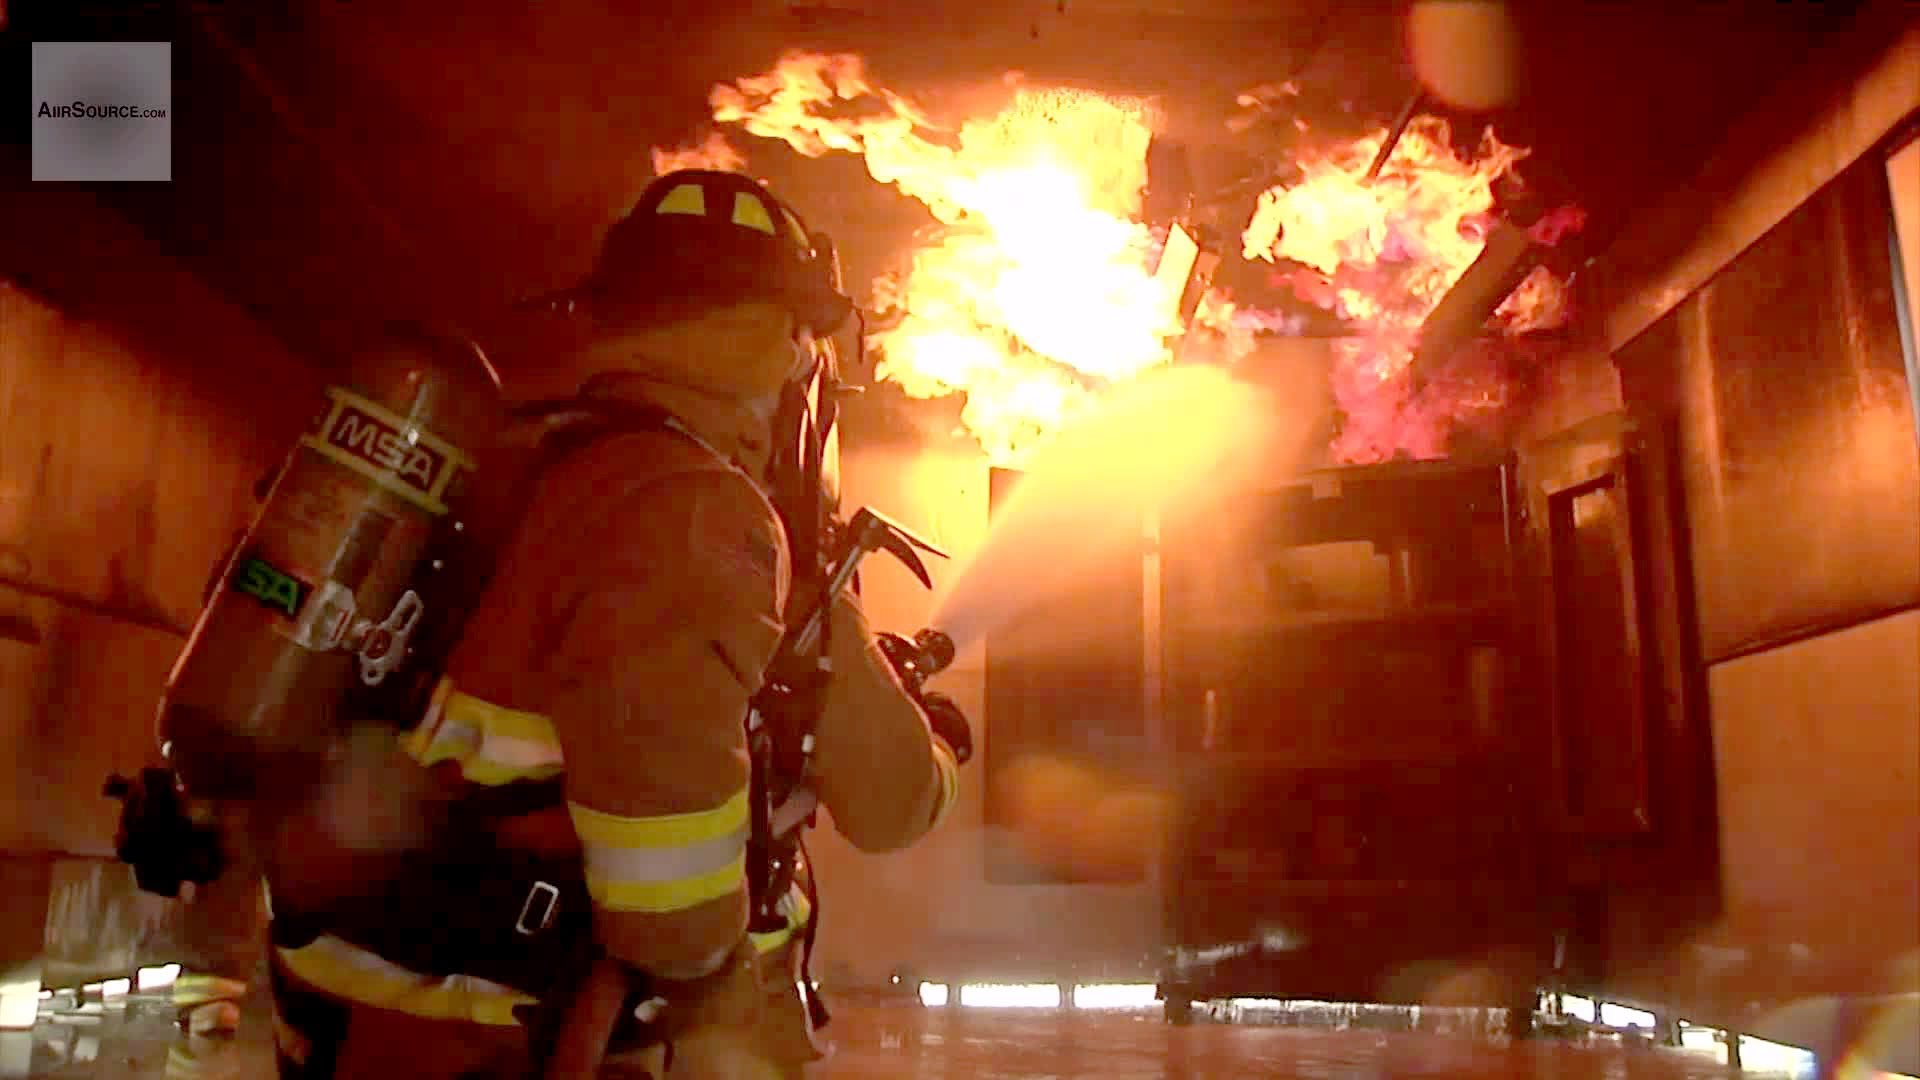 Download Firefighter Live Wallpaper Gallery